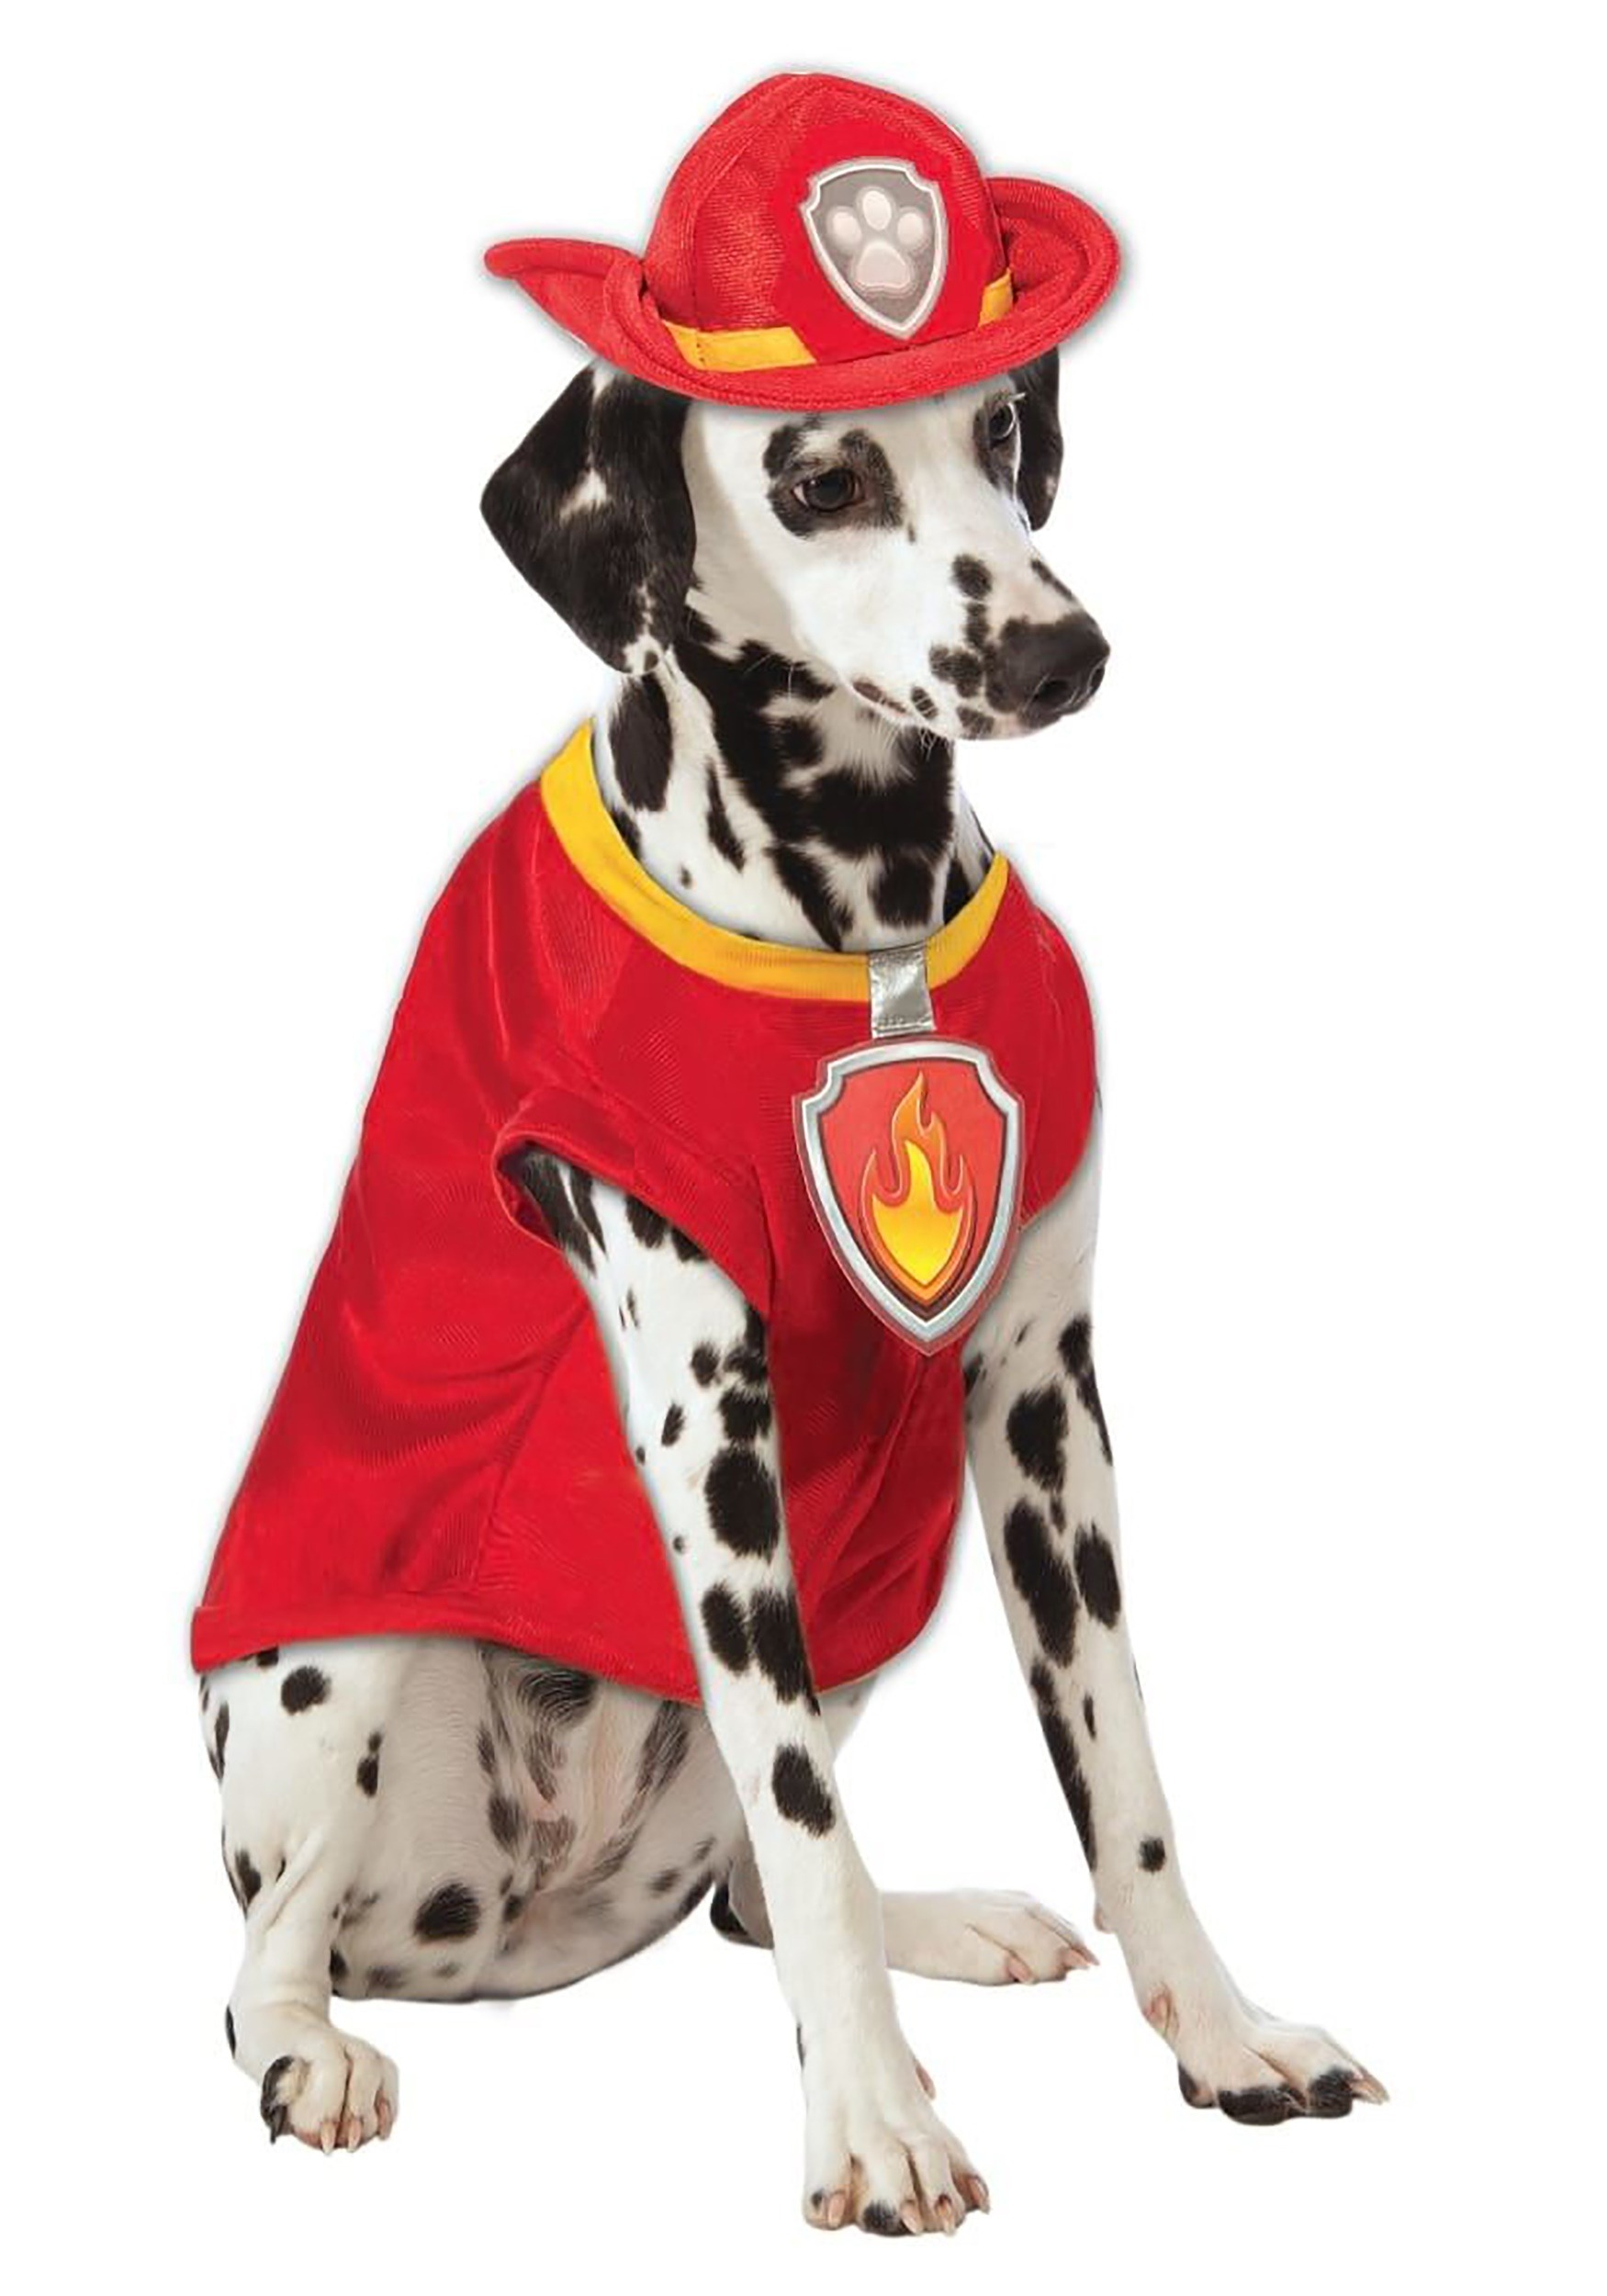 Paw Patrol Marshall The Fire Dog Pet Outfit